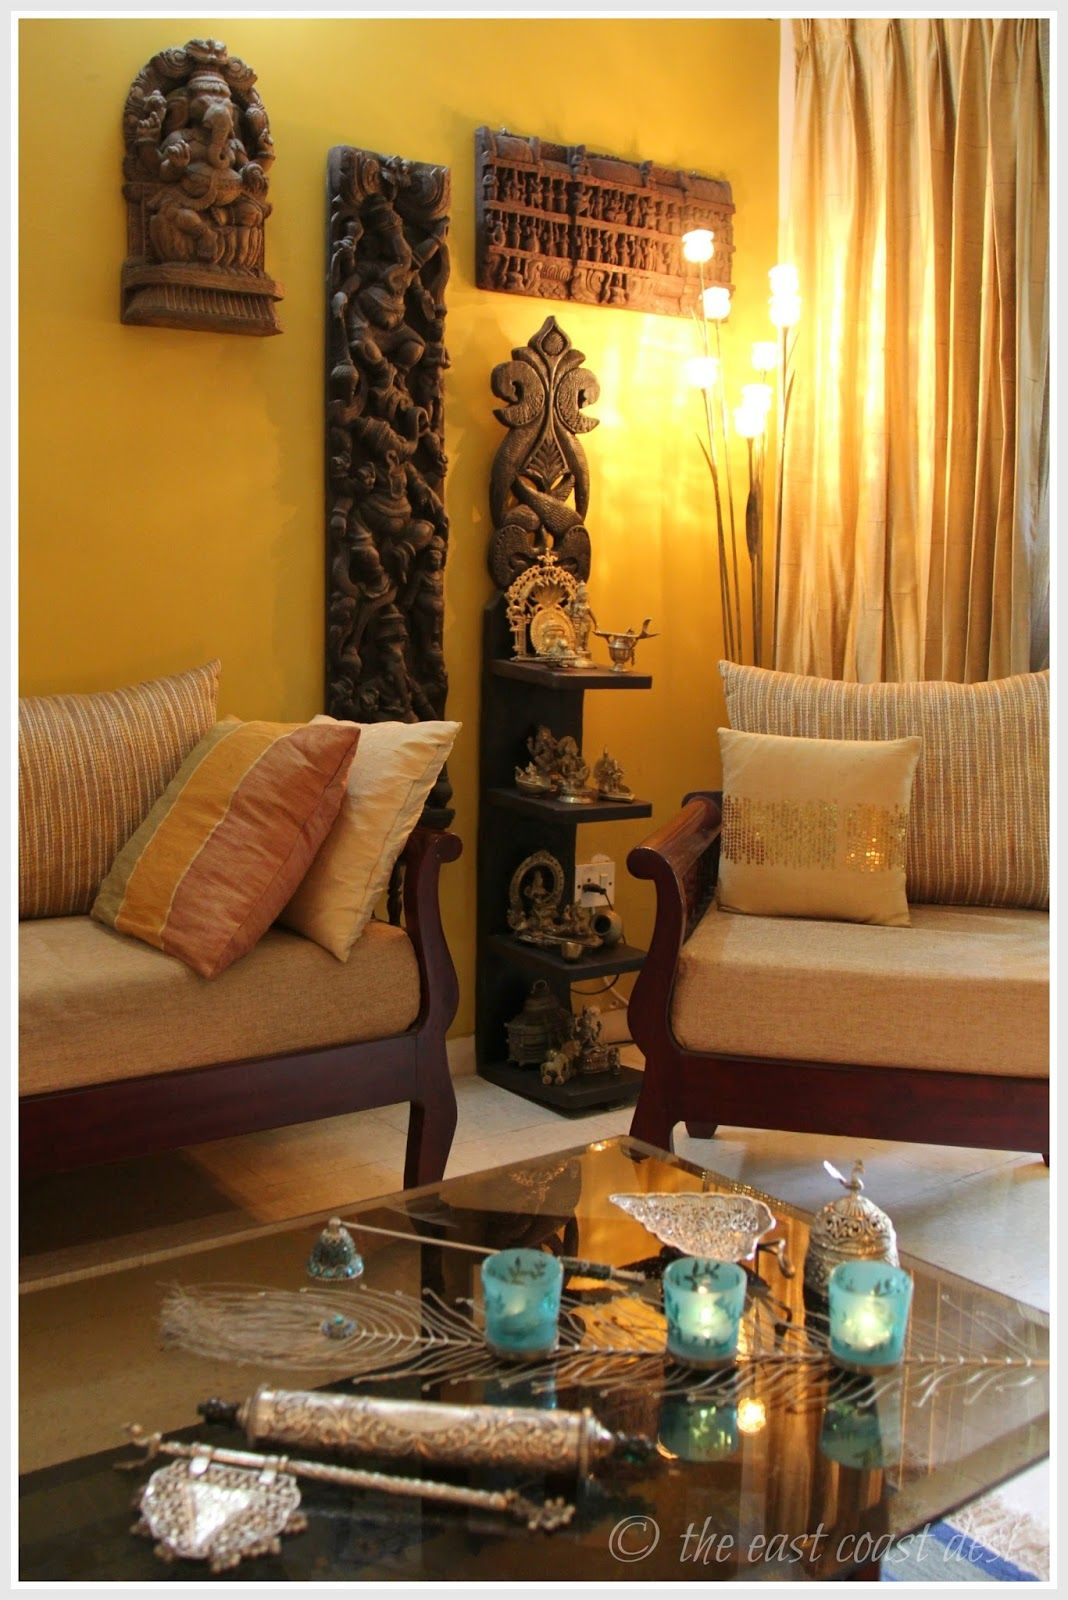 The east coast desi living with what you love home tour for Indian interior design ideas